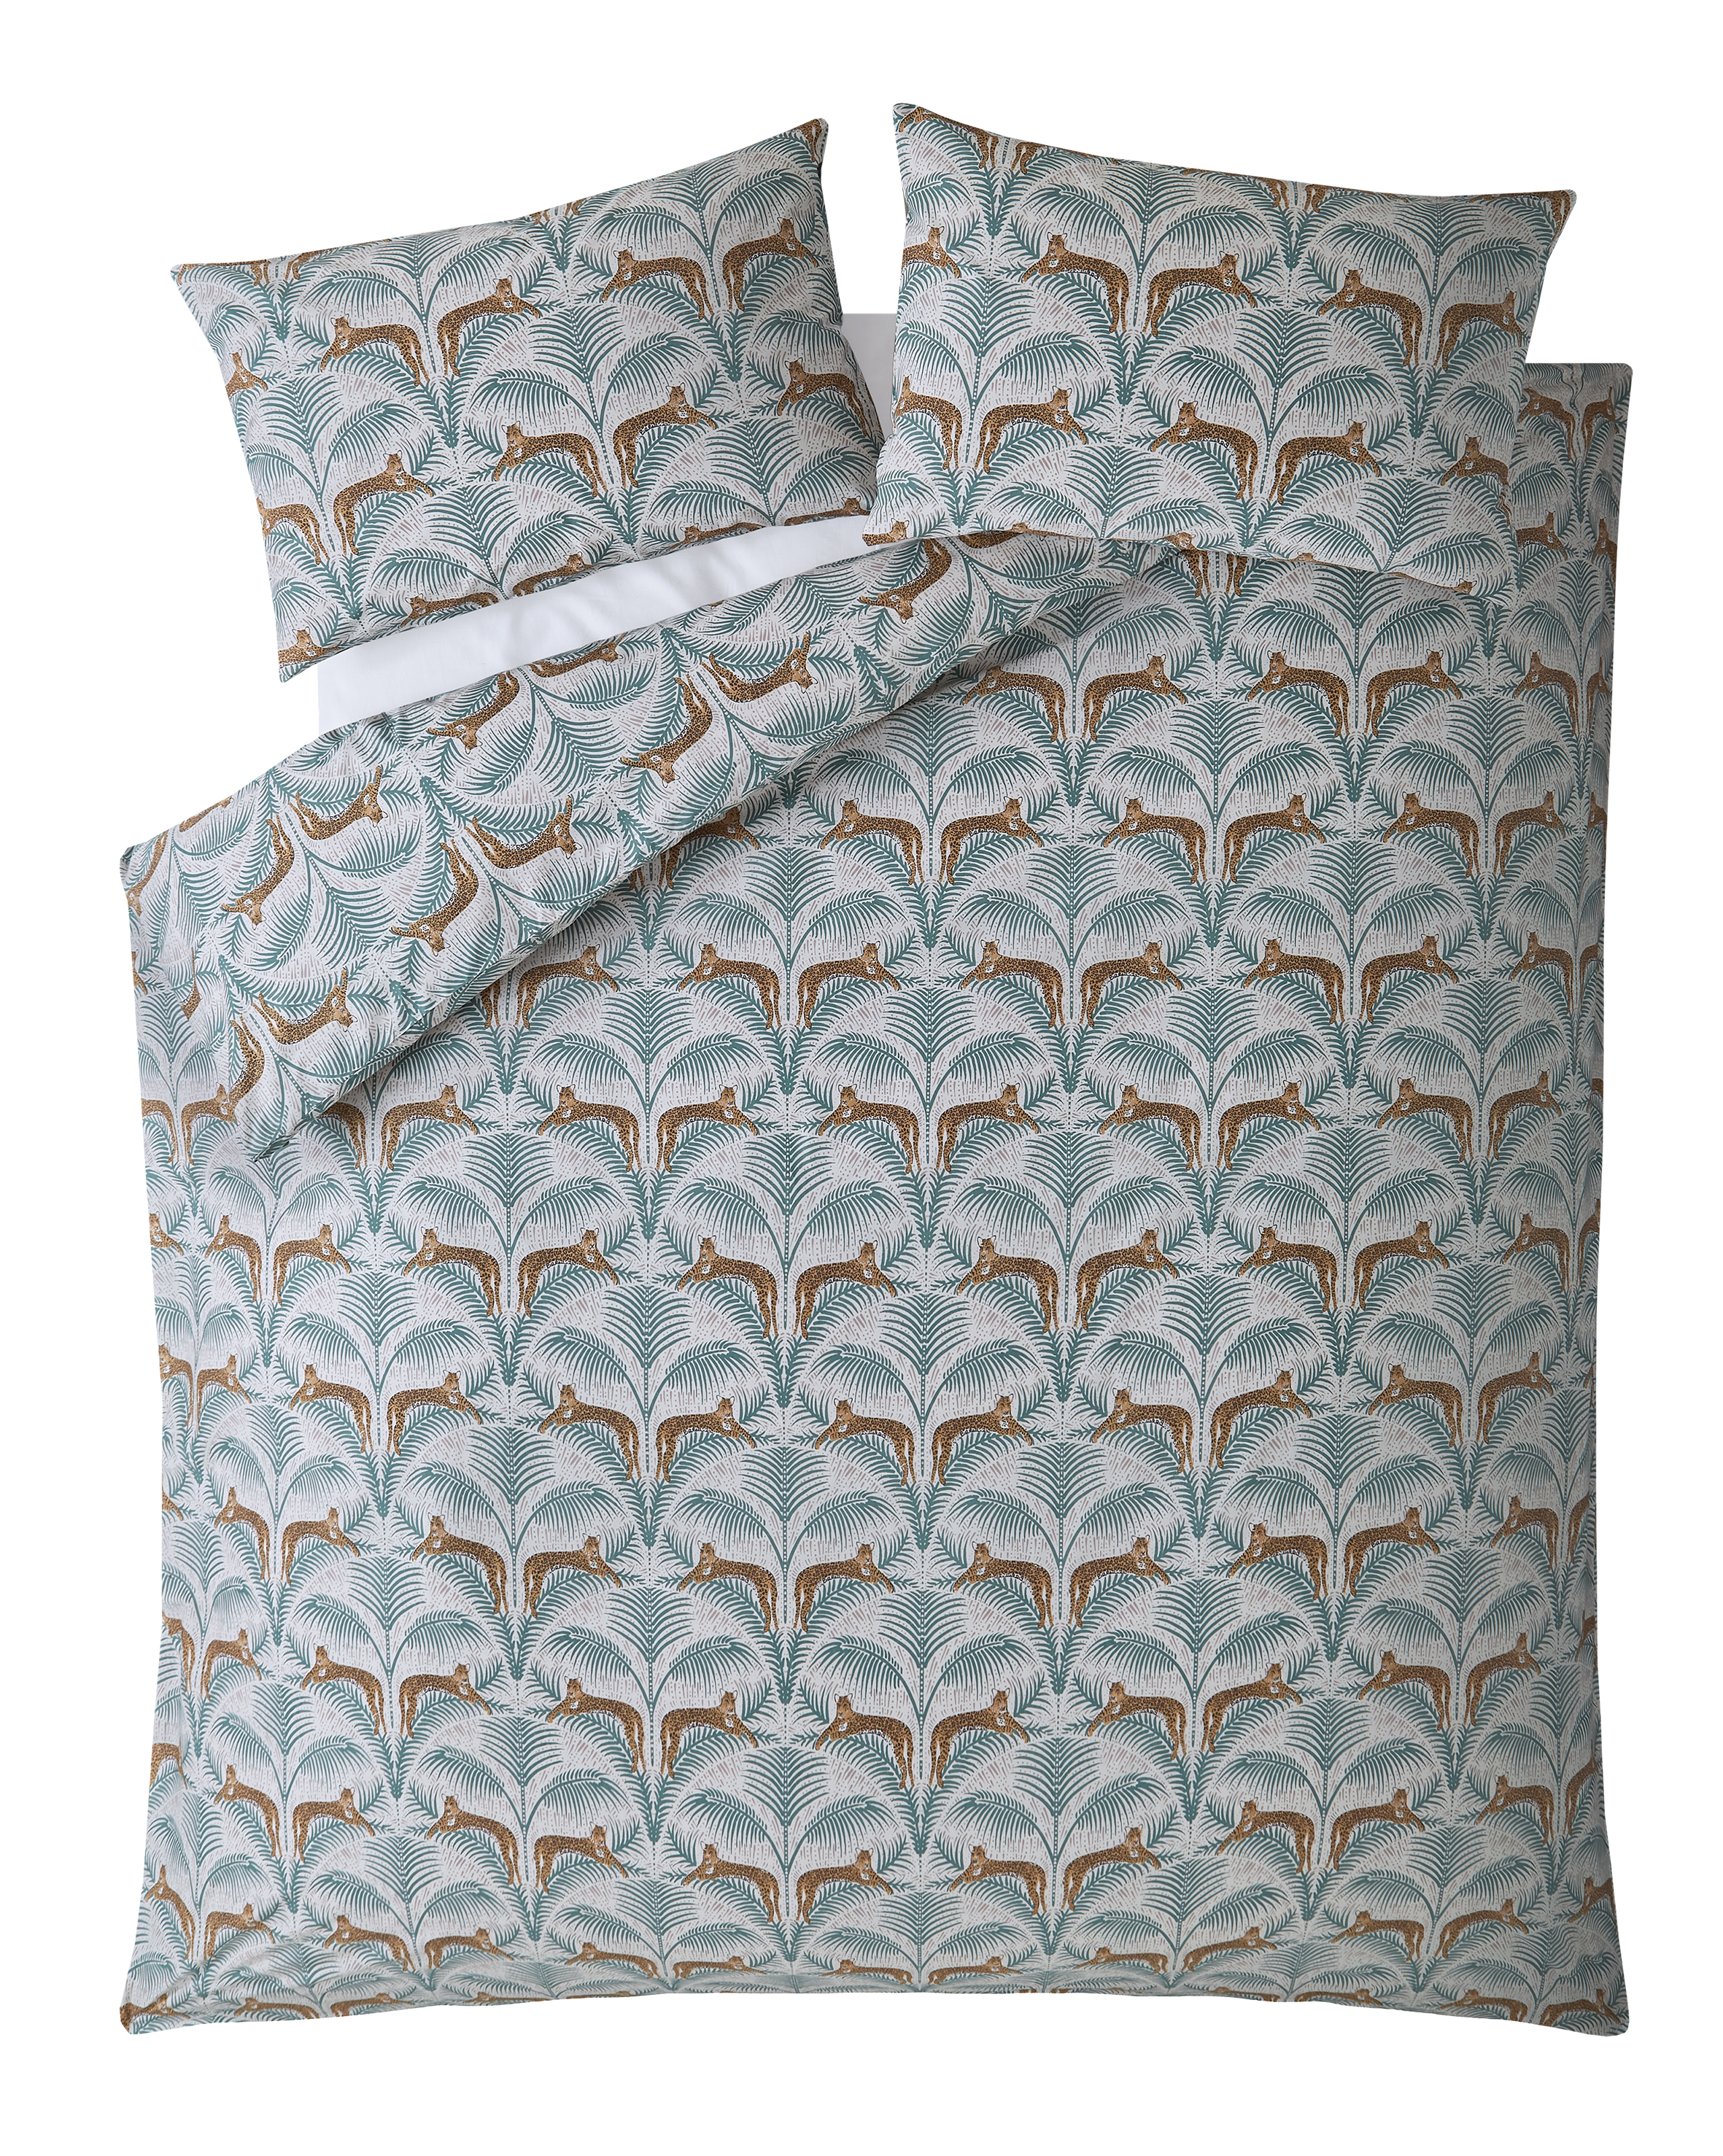 Skinny Dip Daisy King Quilt Set Charcoal Voisins Department Store